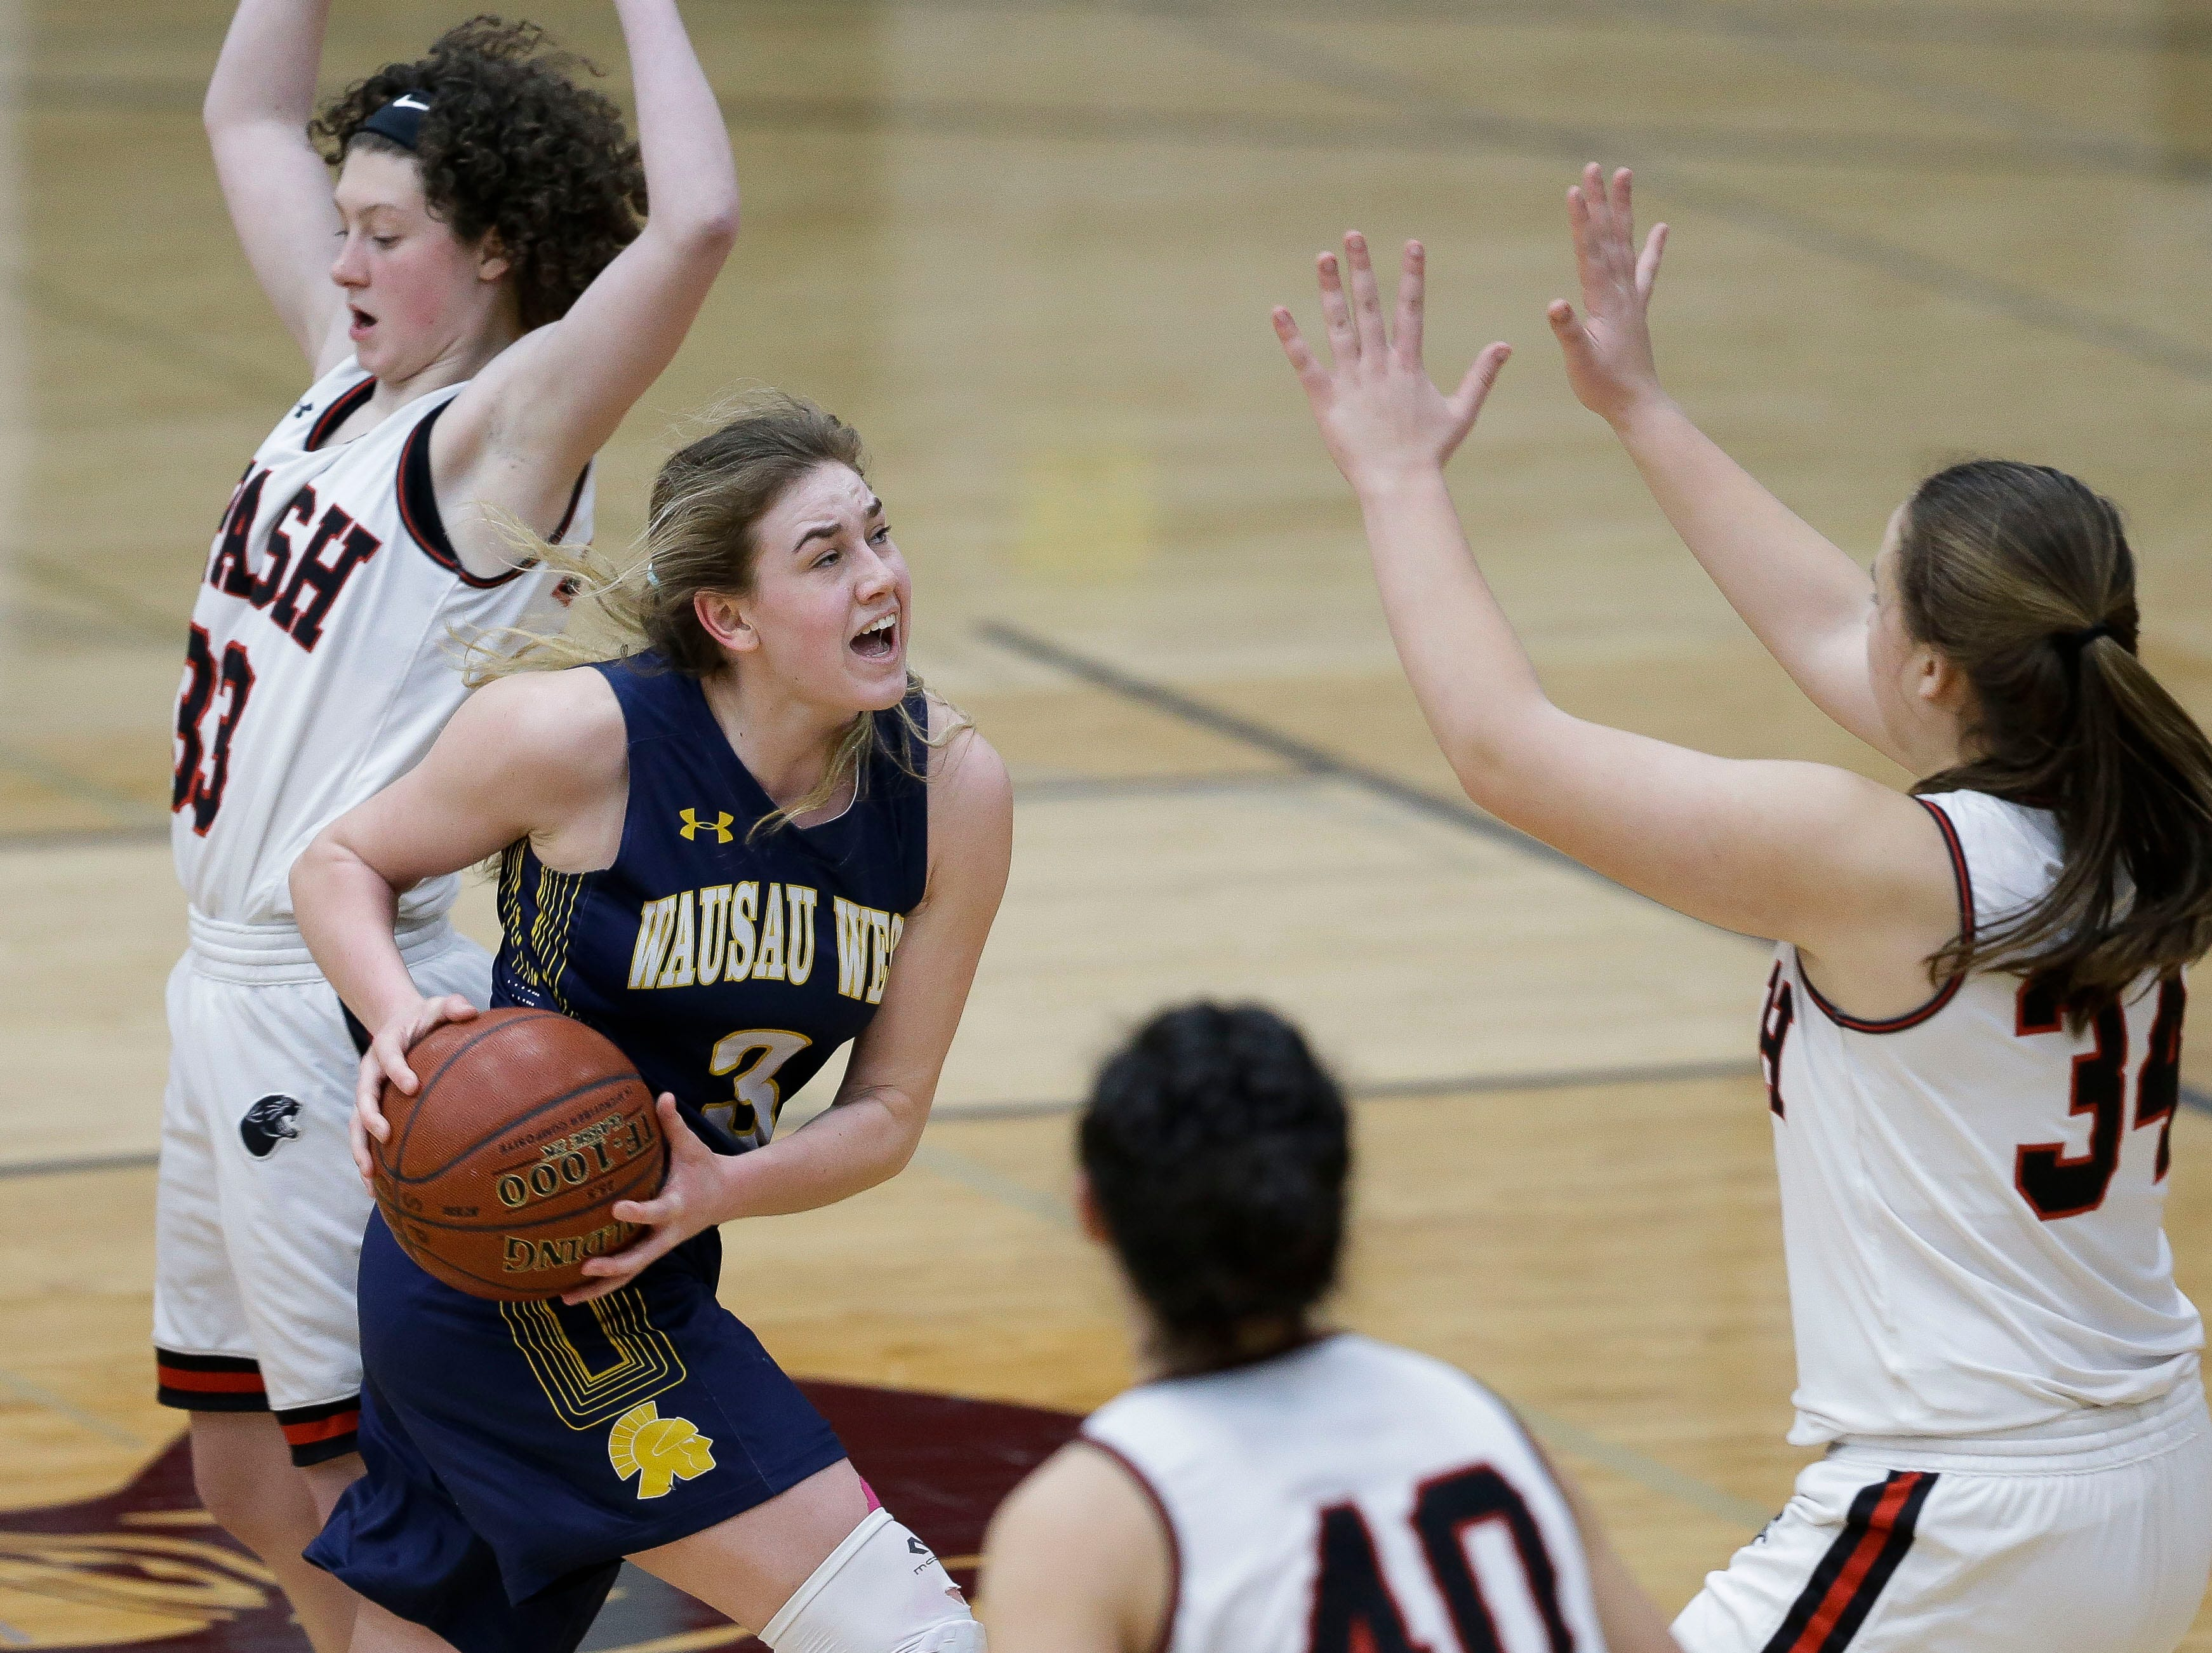 Wausau West's Kadie Deaton (3) drives to the basket against SPASH on Thursday, February 14, 2019, at SPASH in Stevens Point, Wis.Tork Mason/USA TODAY NETWORK-Wisconsin